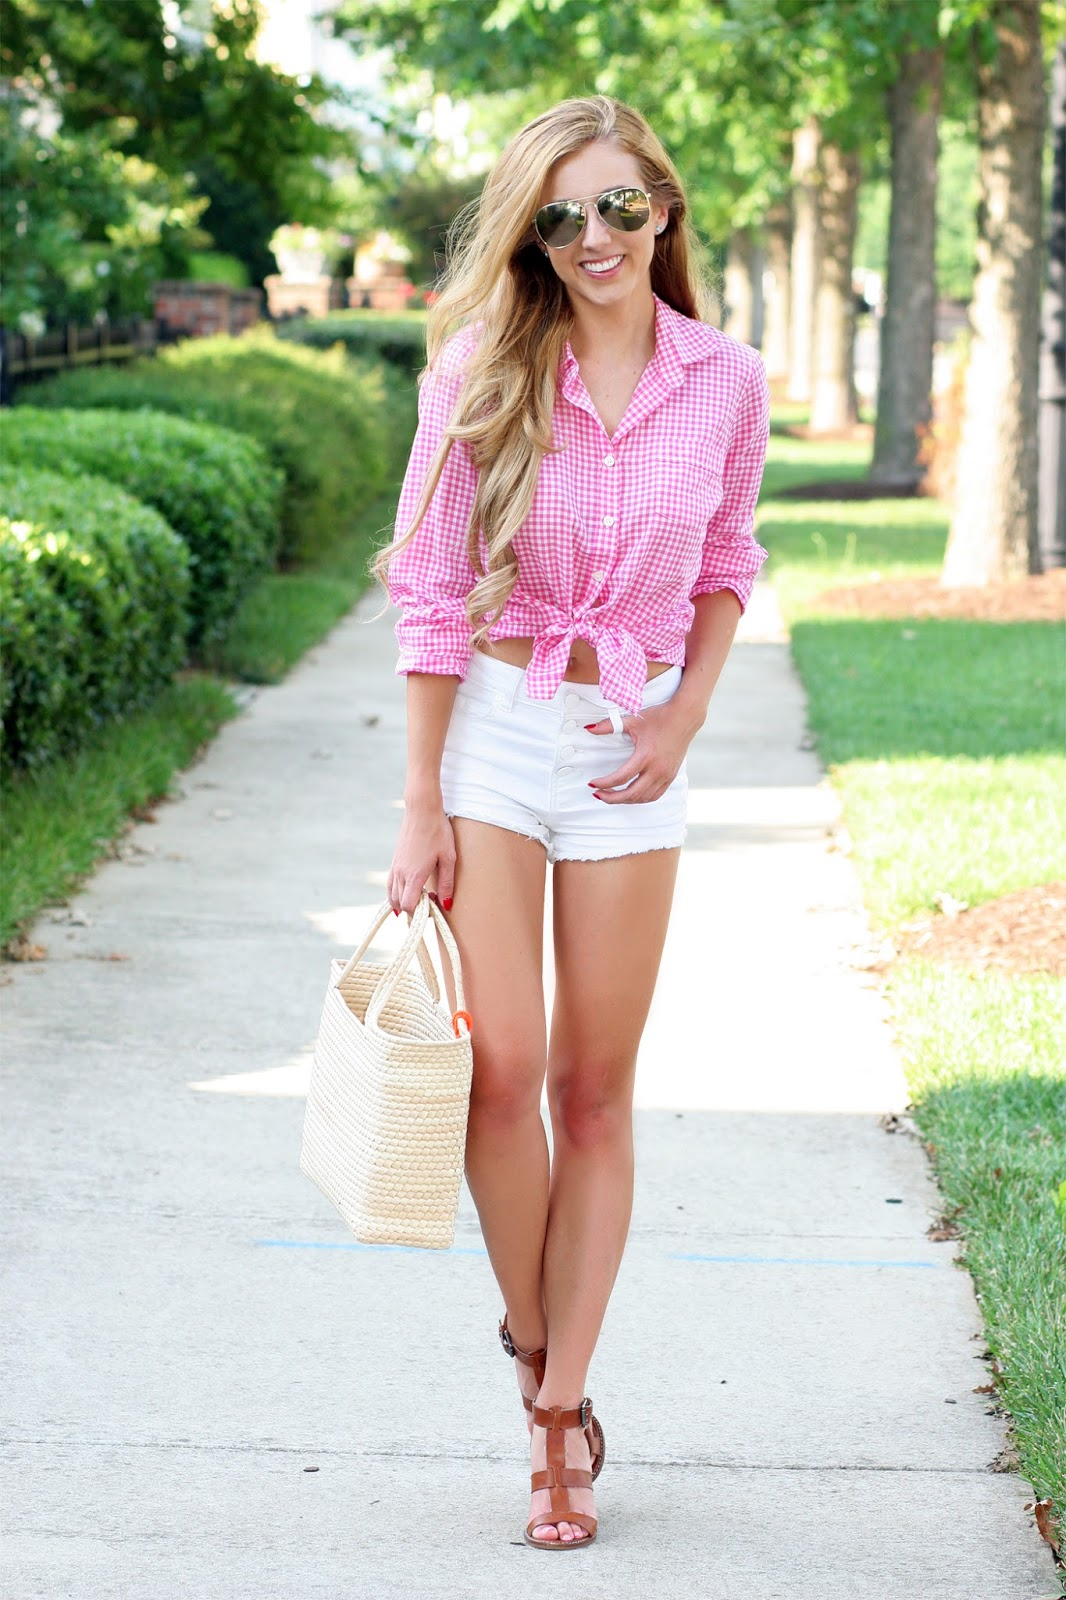 How-to-style-Tied-gingham-button-up-top-and-daisy-dukes-street-style